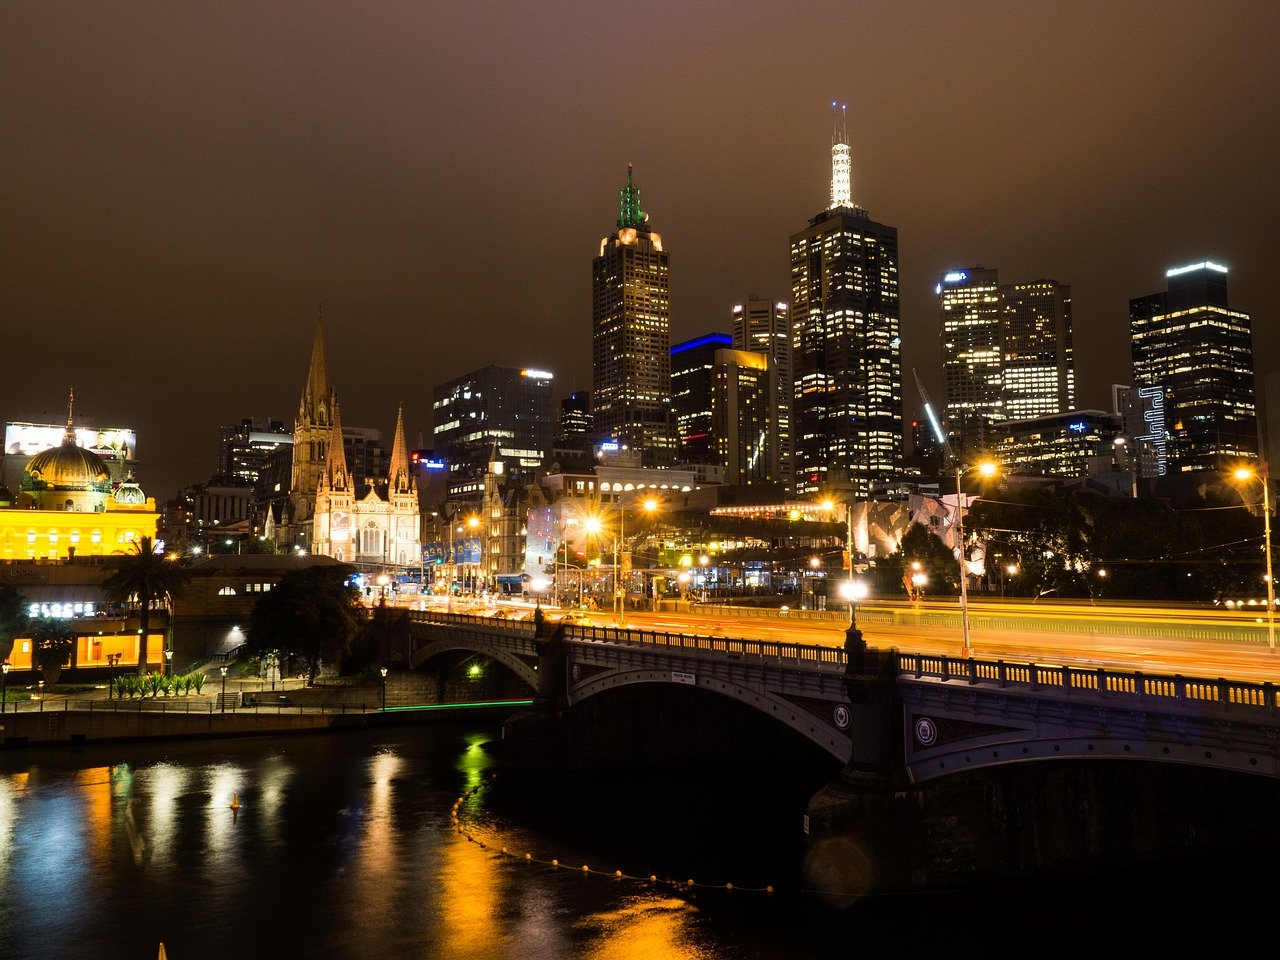 Melbourne at night - image